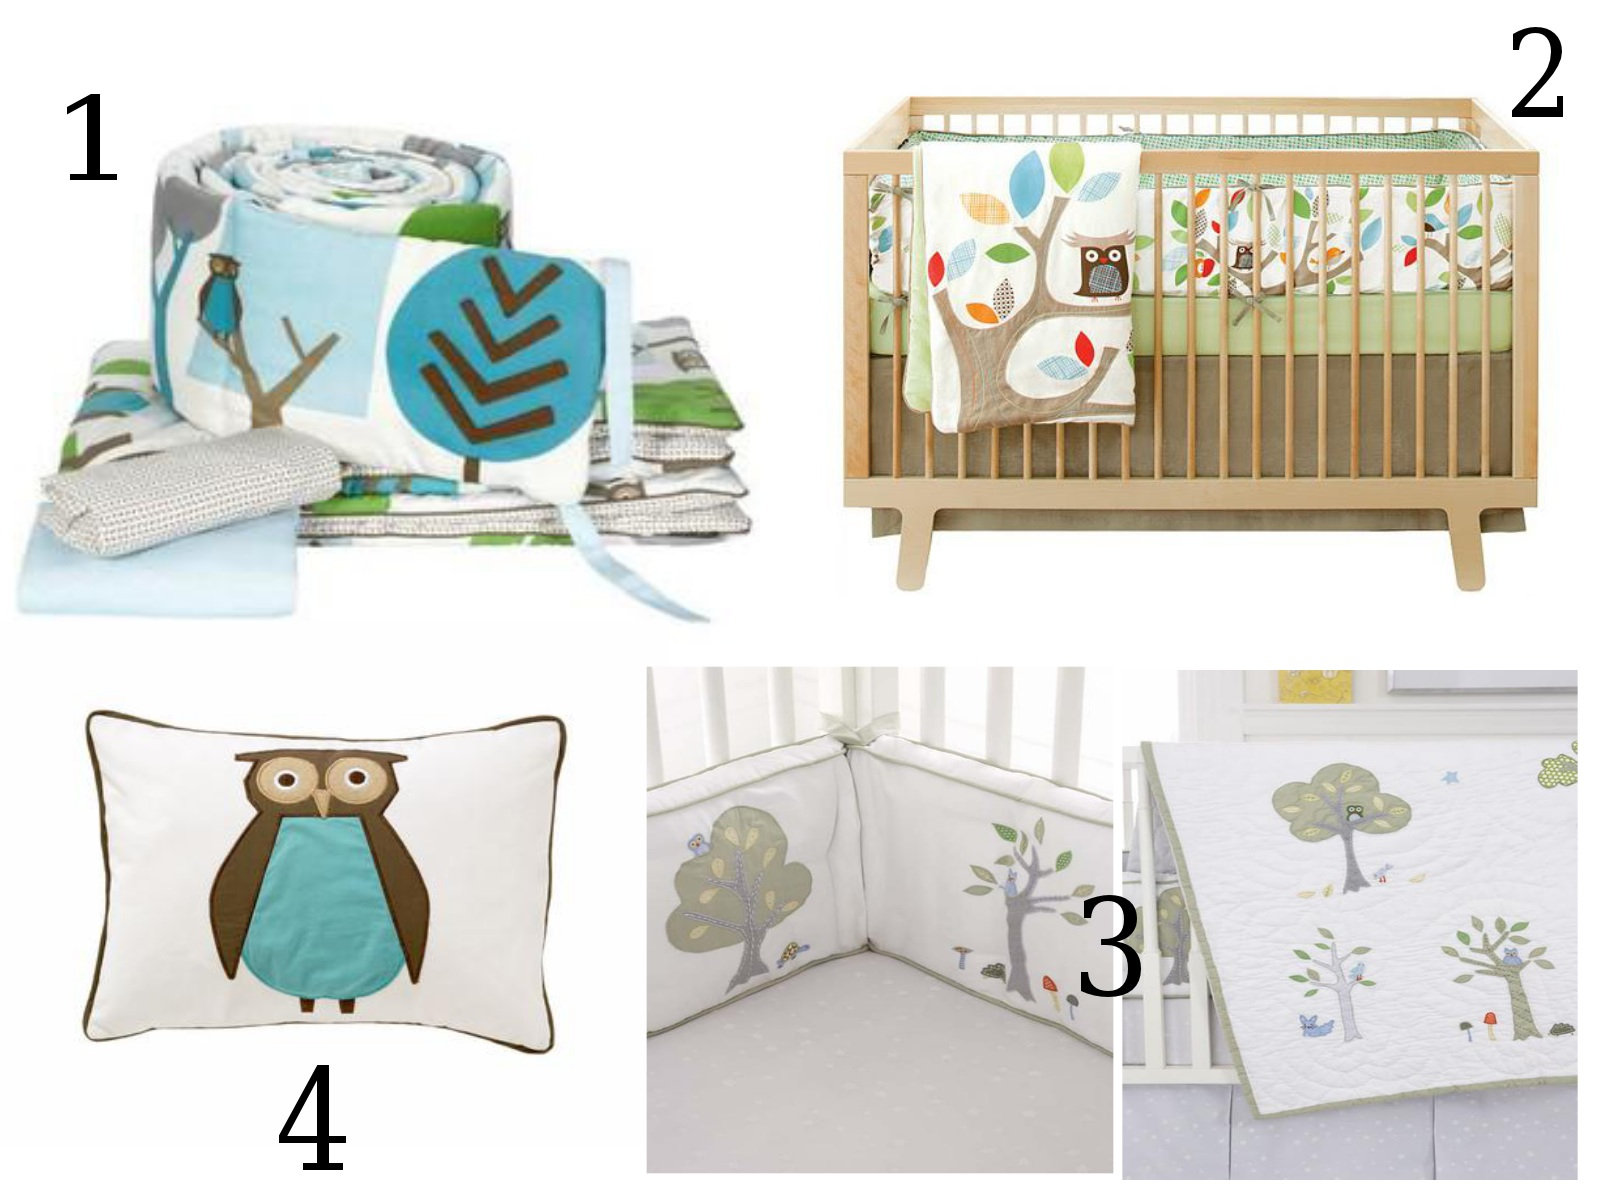 crib cuteness you all pinterest vests bedding boys little depot dress kids pin babies and baby burlington ties sets cribs up handle the clothing bottles can